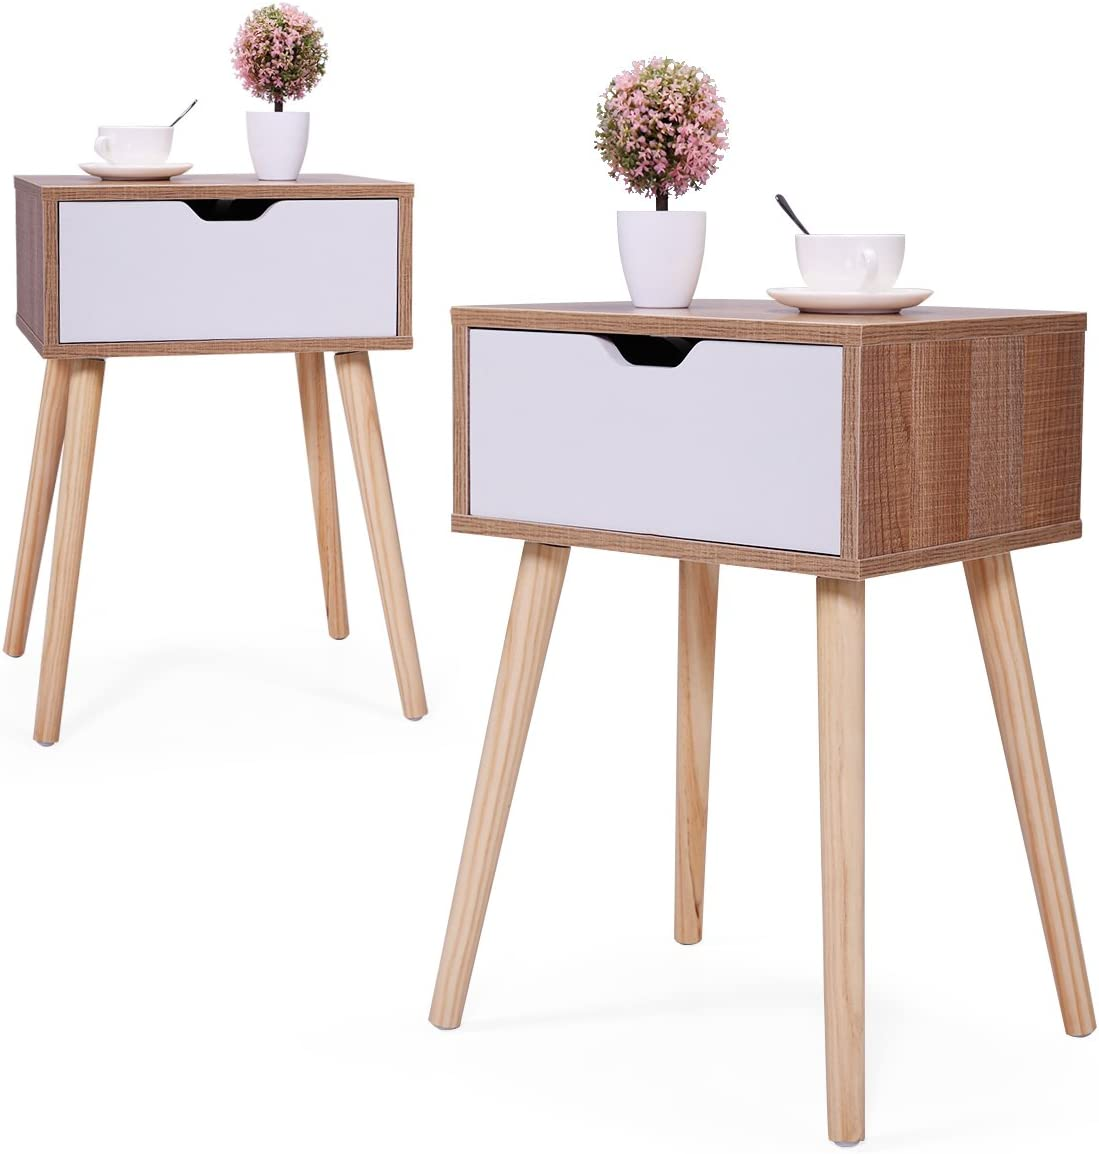 JAXSUNNY Mid-Century Solid Wood Legs Side Table, Bedside Table Nightstand End Table, with White Storage Drawer 23.1 H – Set of 2 in Walnut